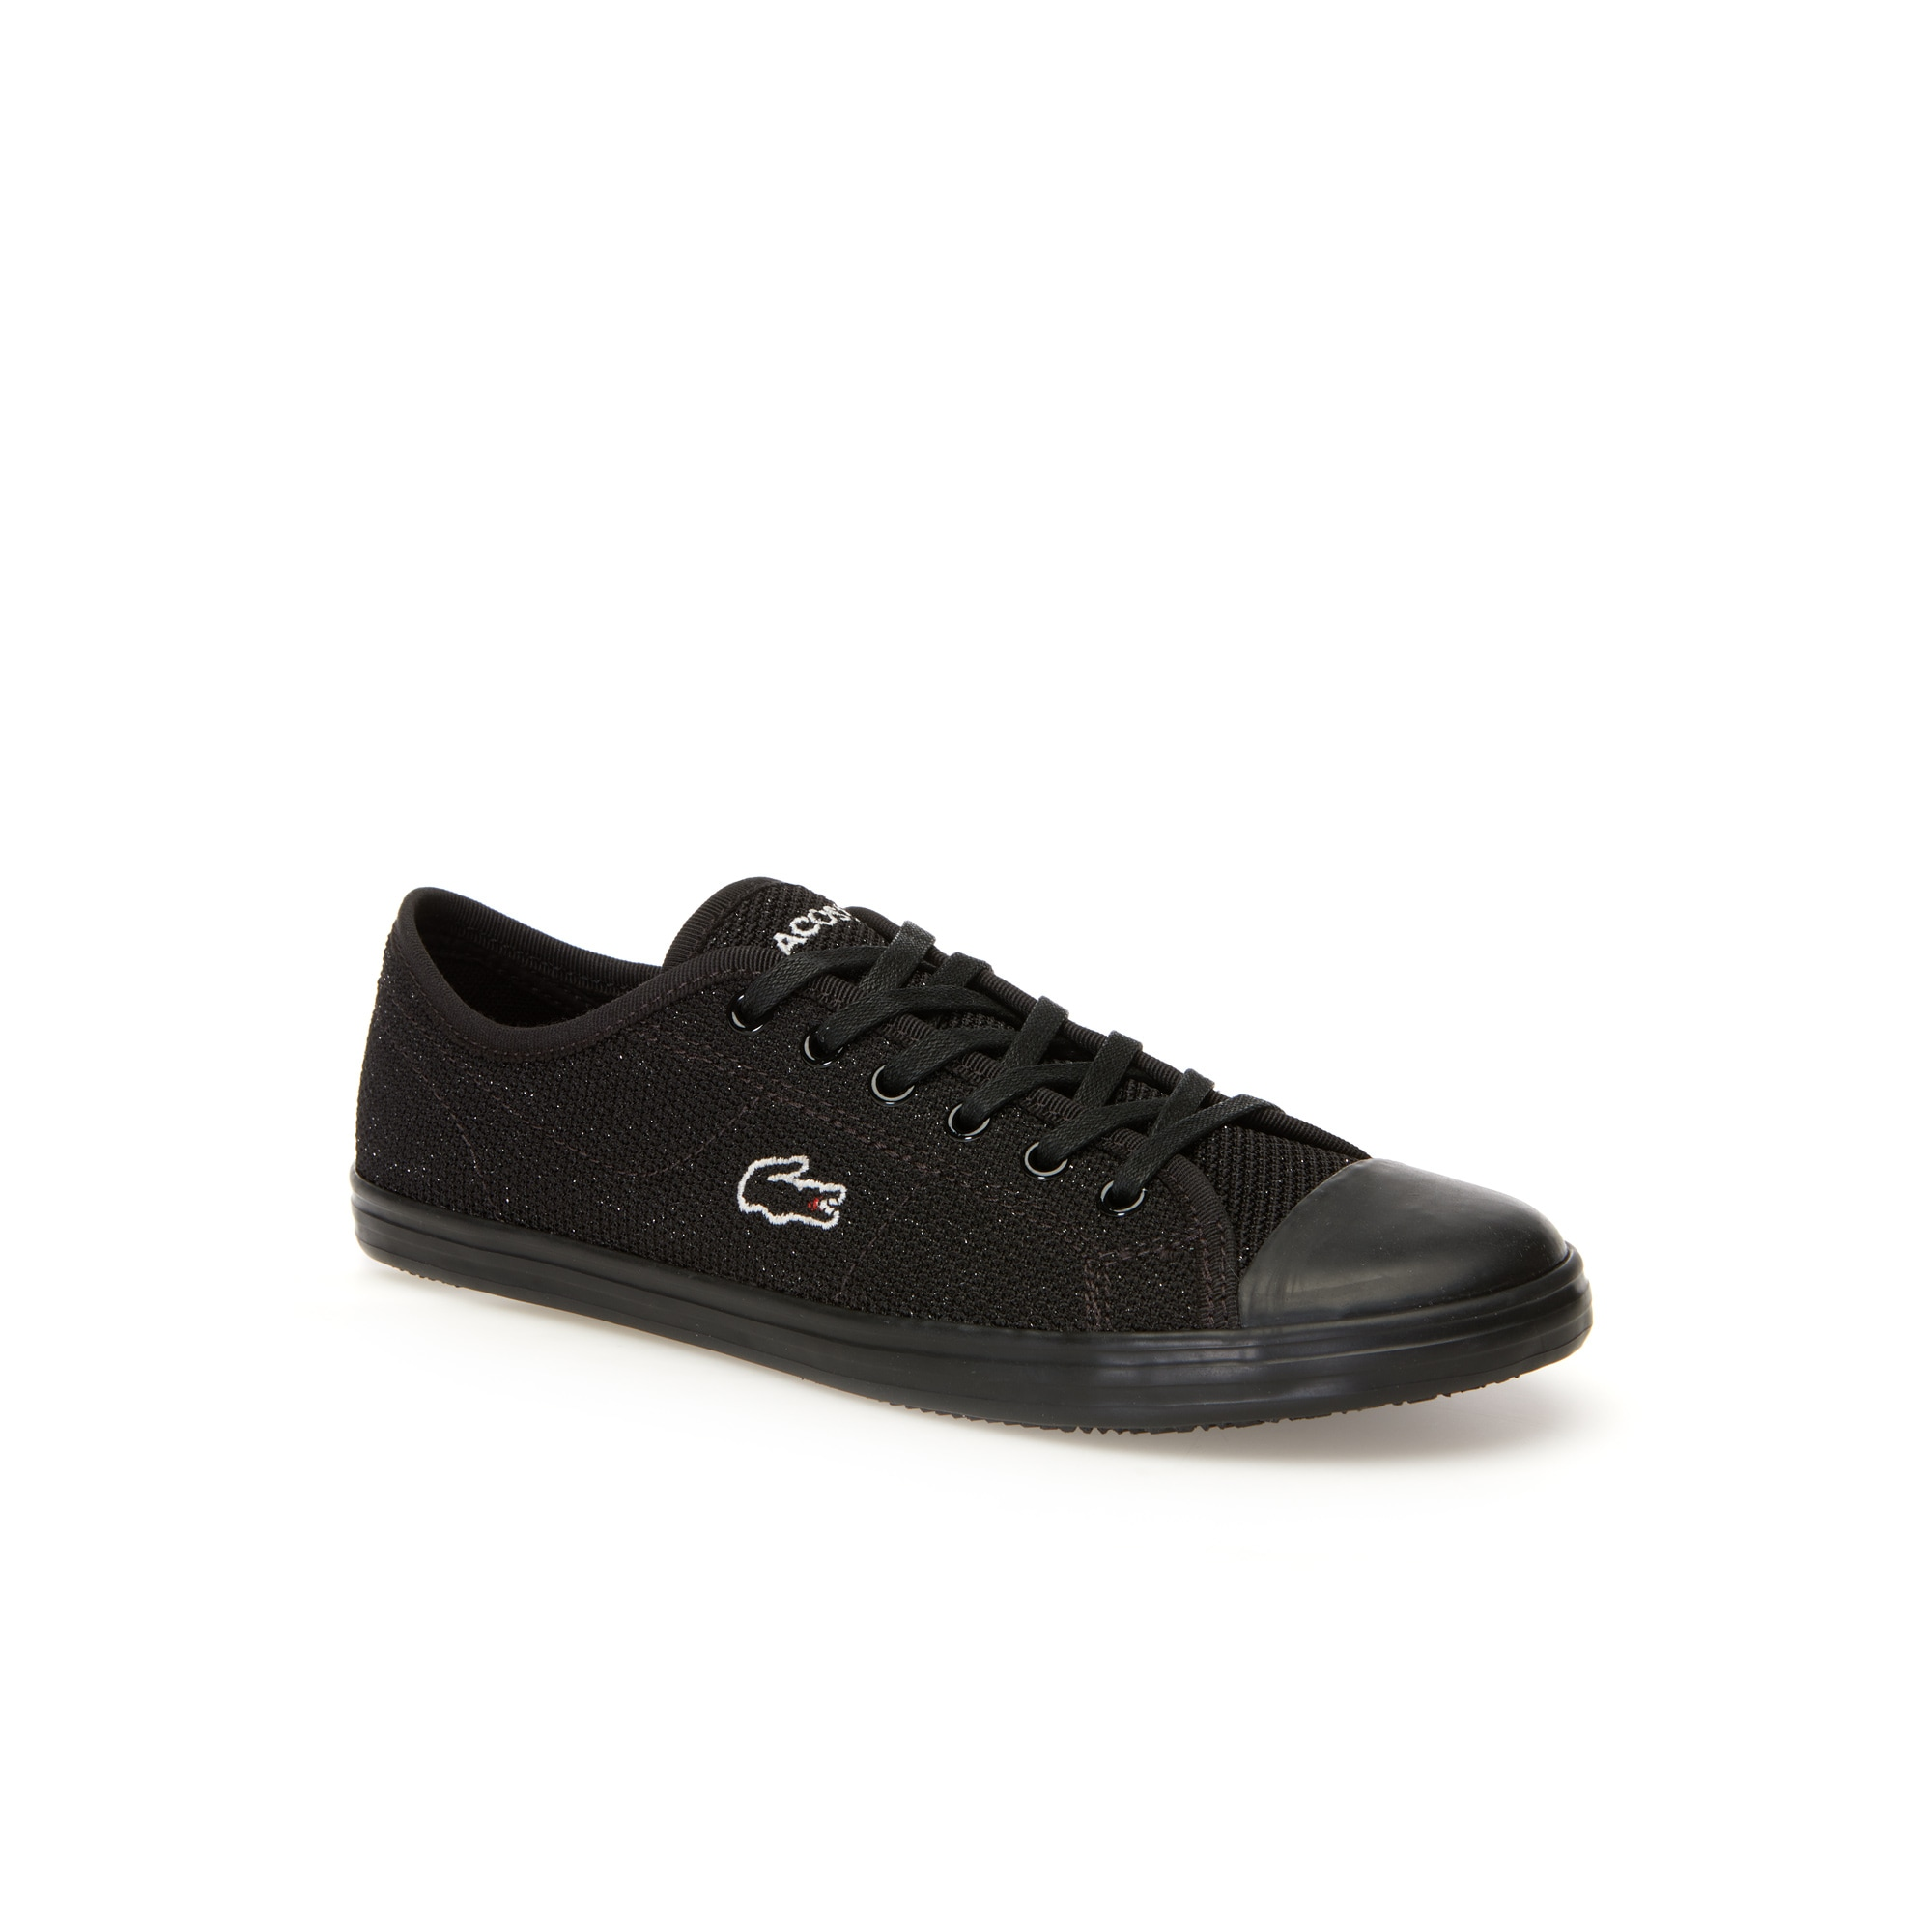 Women's Ziane Metallic Flecked Trainers